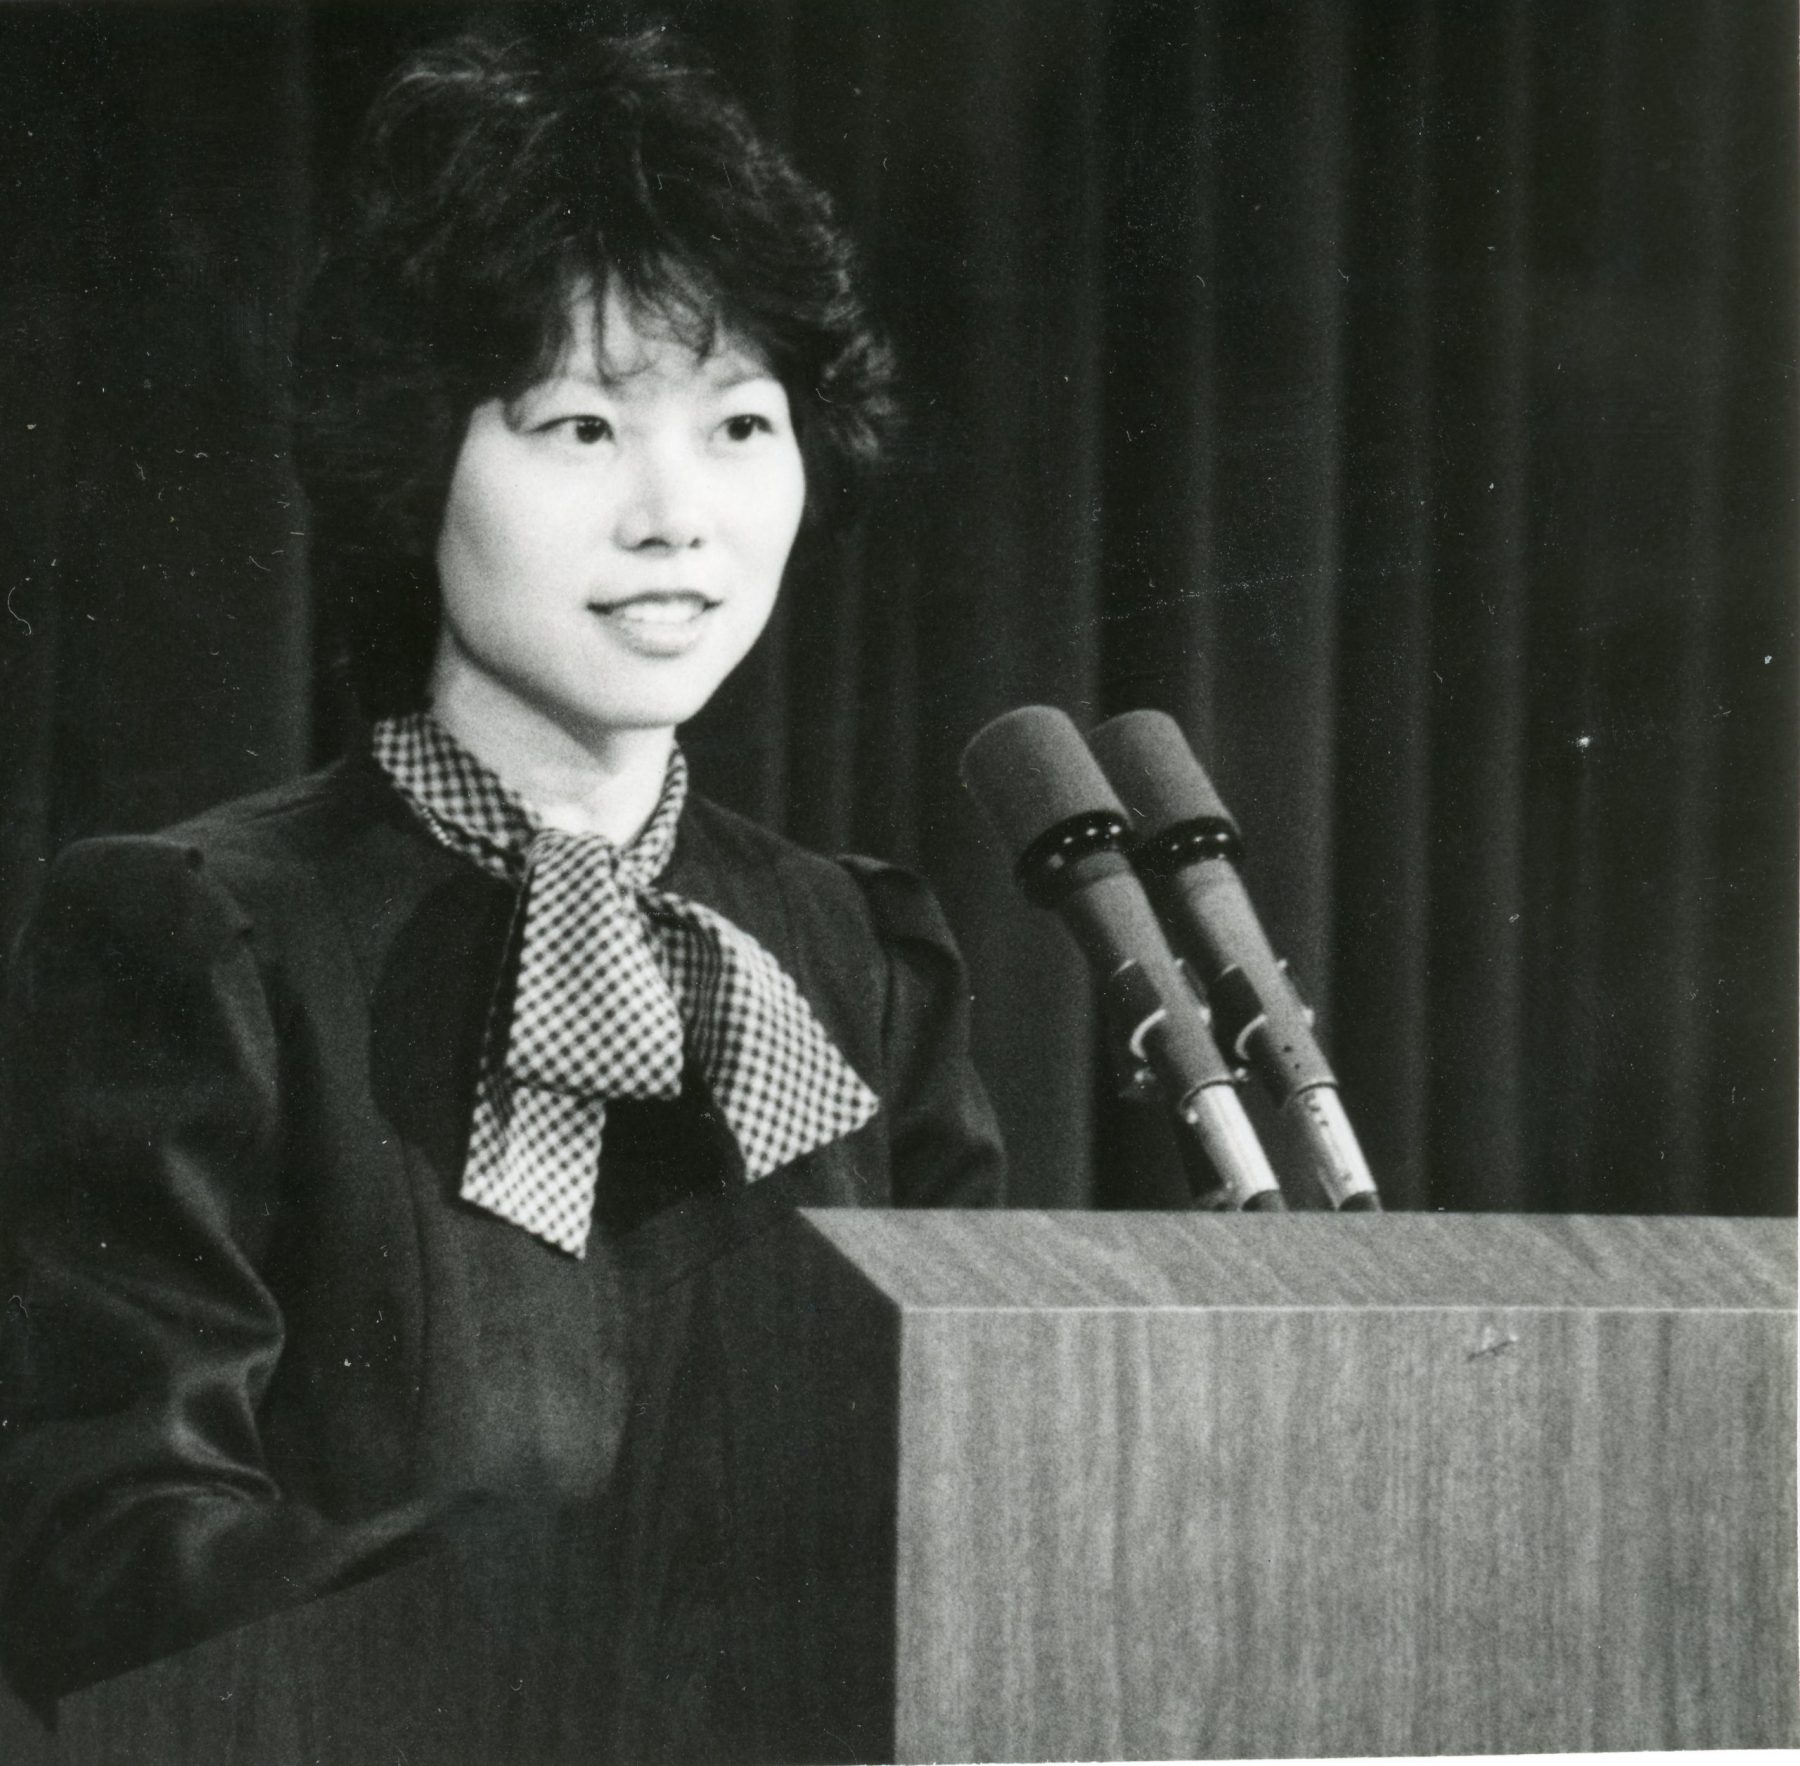 White House Fellow Elaine Chao speaking at a White House event.